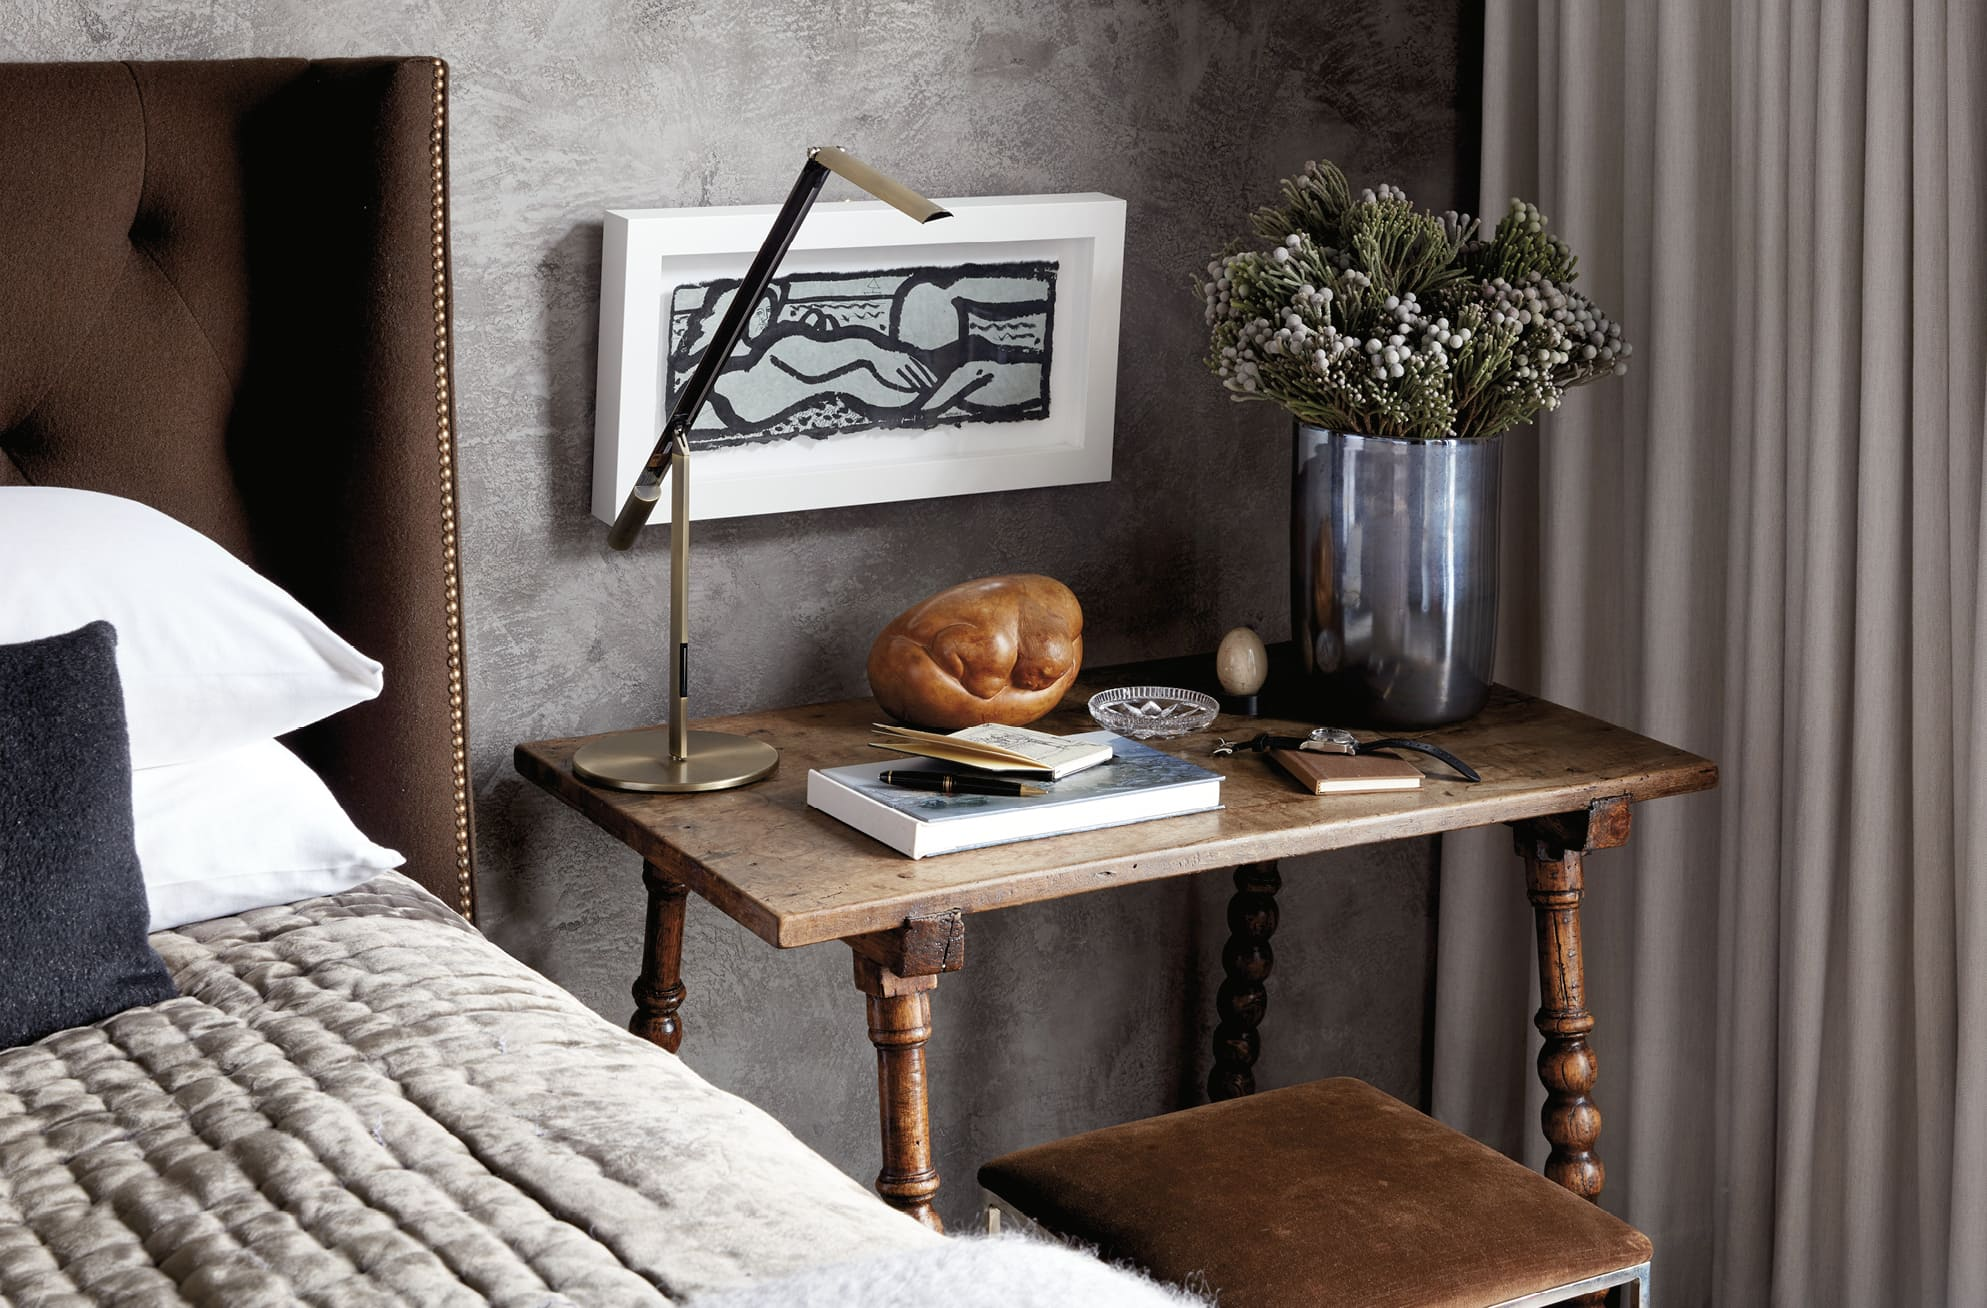 Books and flowers on a nightstand